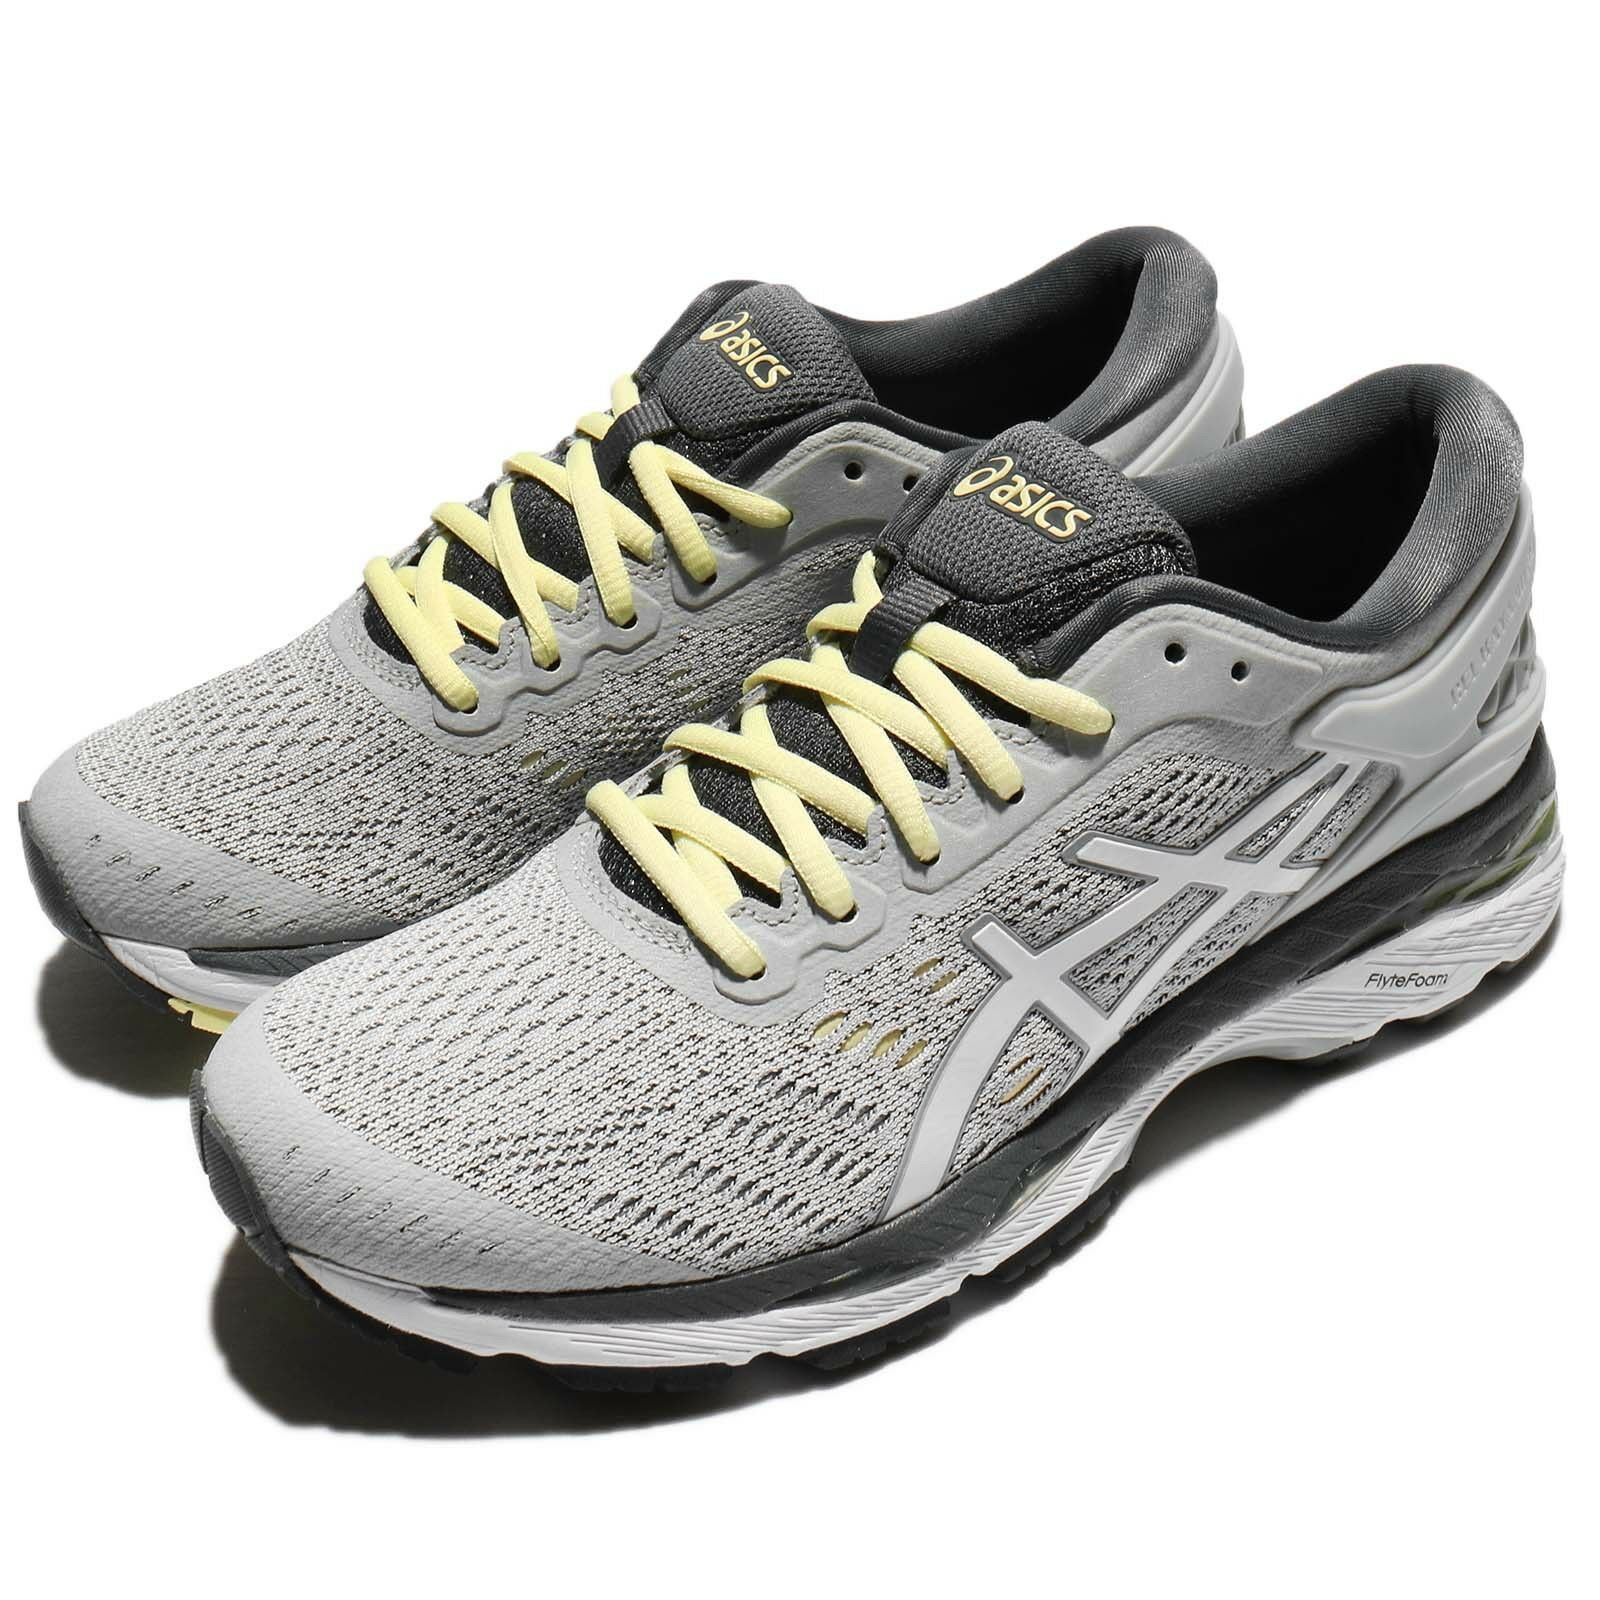 Asics Gel-Kayano 24 Glacier gris Carbon femmes Running chaussures Trainers T799N-9601